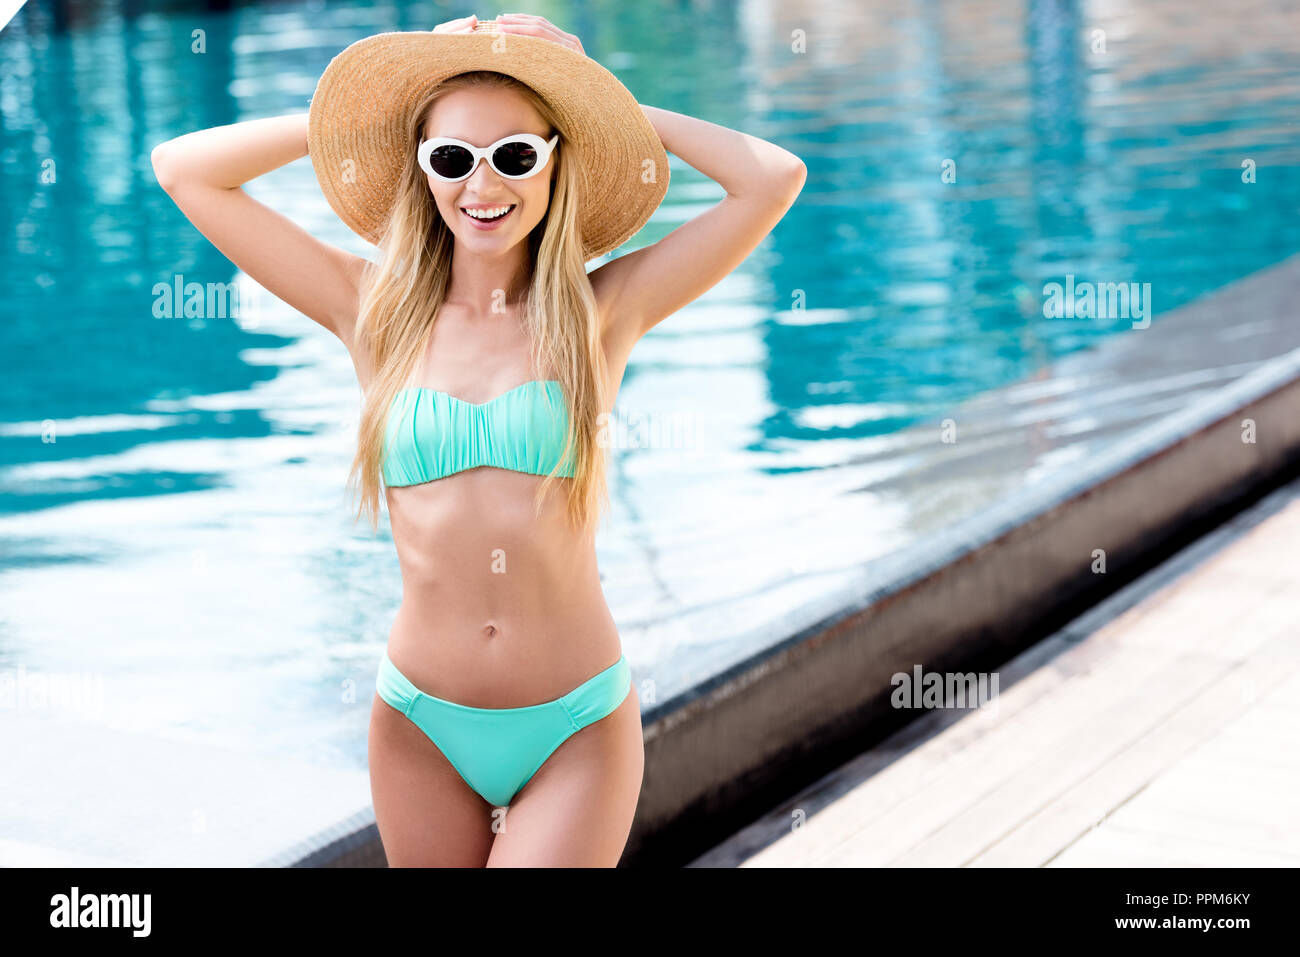 happy young woman in straw hat with vintage sunglasses and bikini at poolside - Stock Image